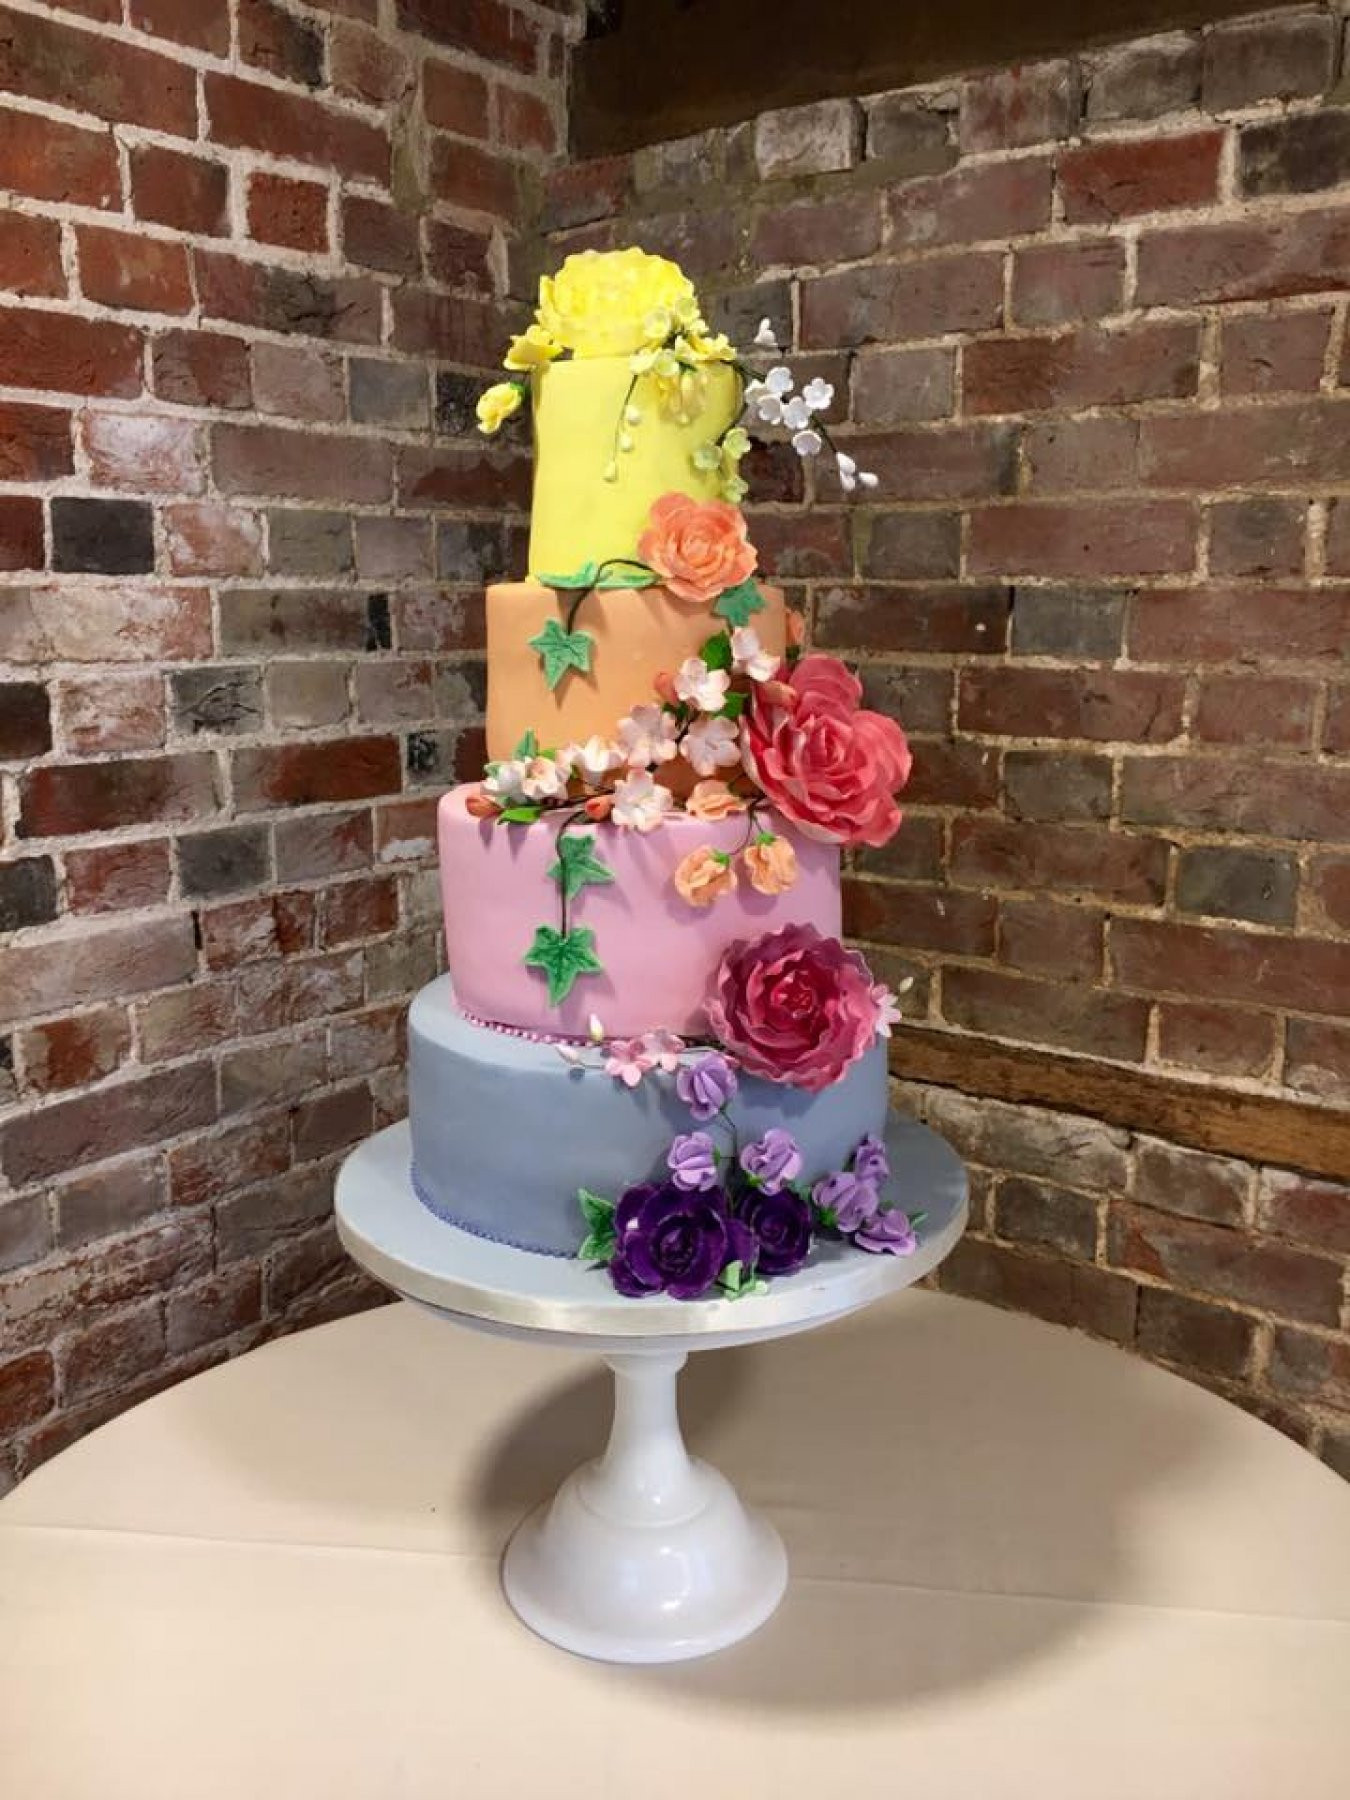 10 Fantastic Wedding Cakes London Has To Offer